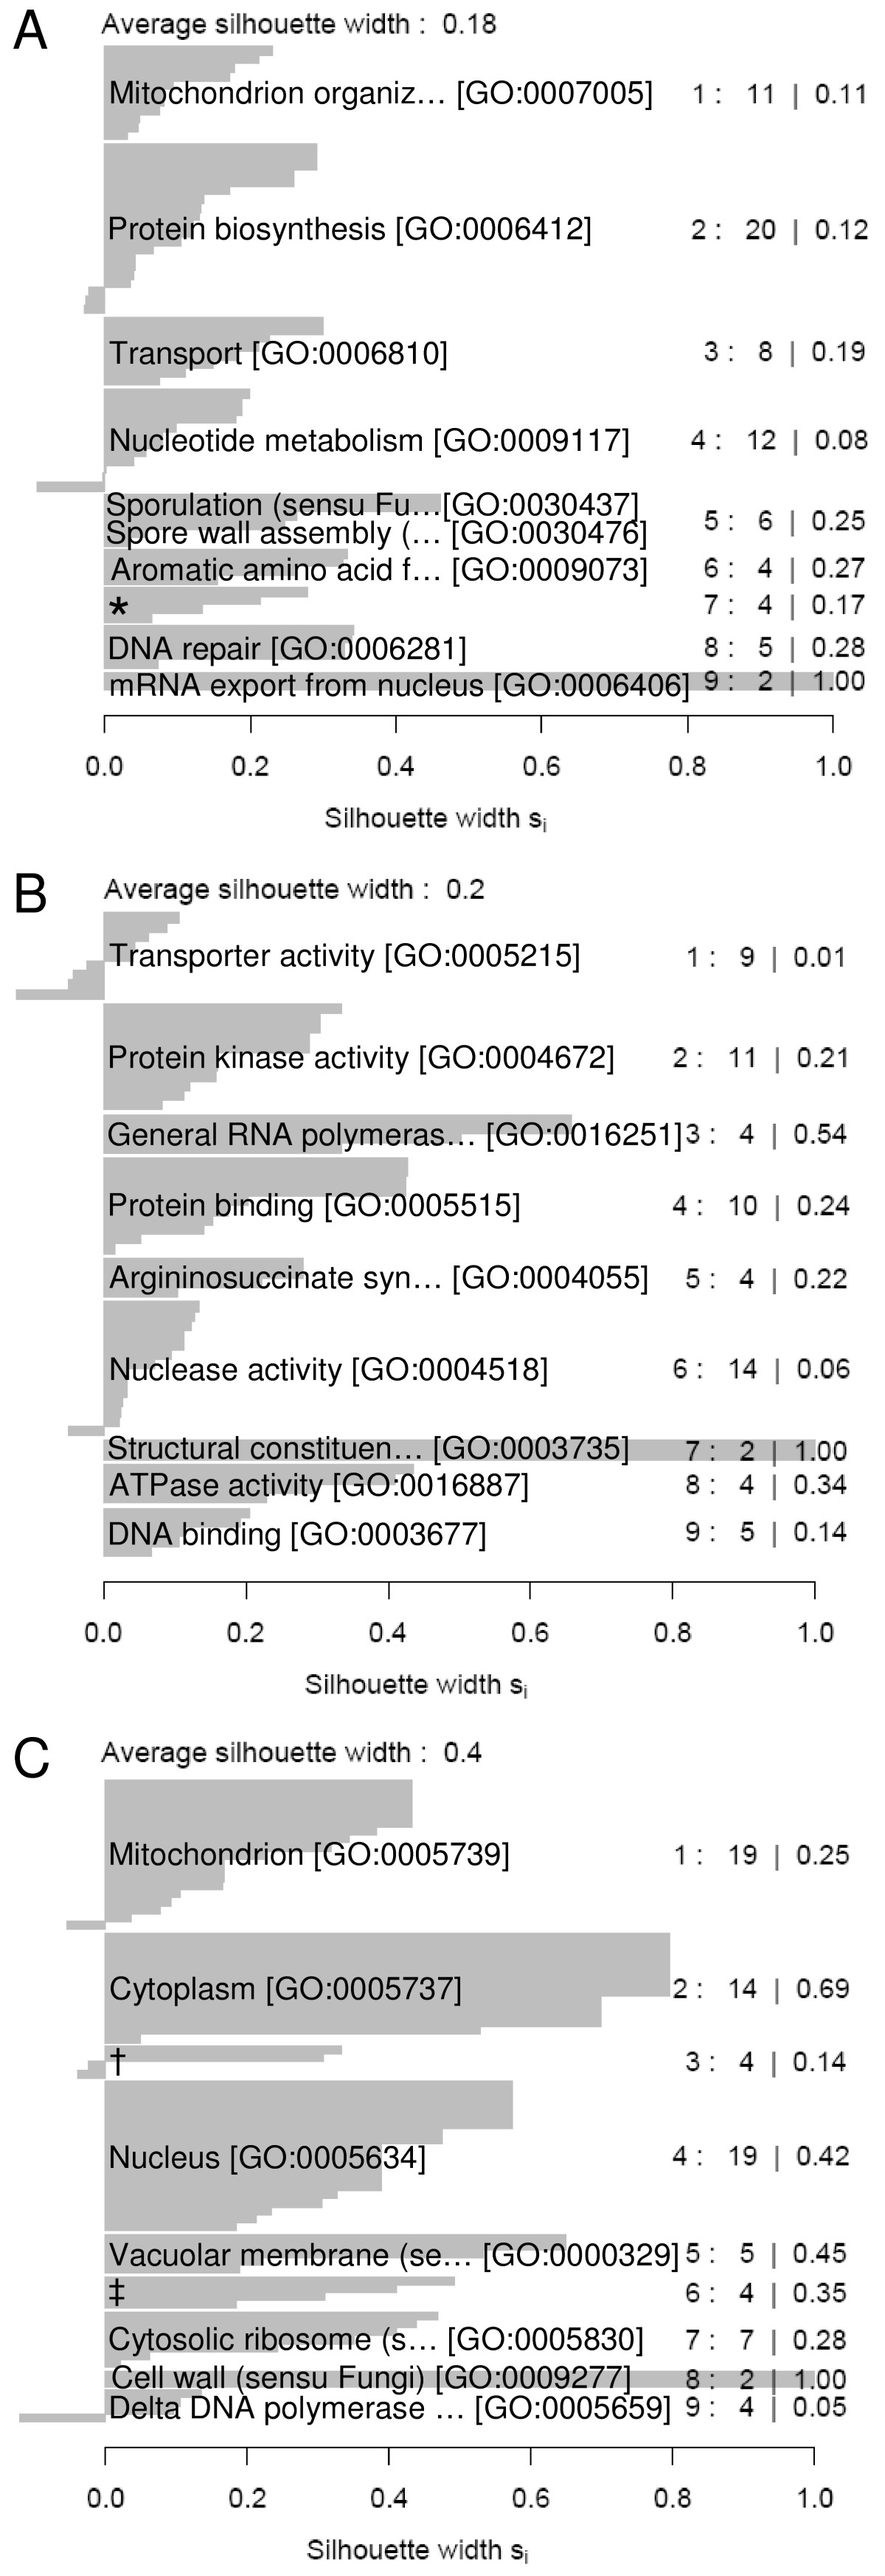 http://static-content.springer.com/image/art%3A10.1186%2F1471-2105-7-338/MediaObjects/12859_2006_Article_1077_Fig5_HTML.jpg